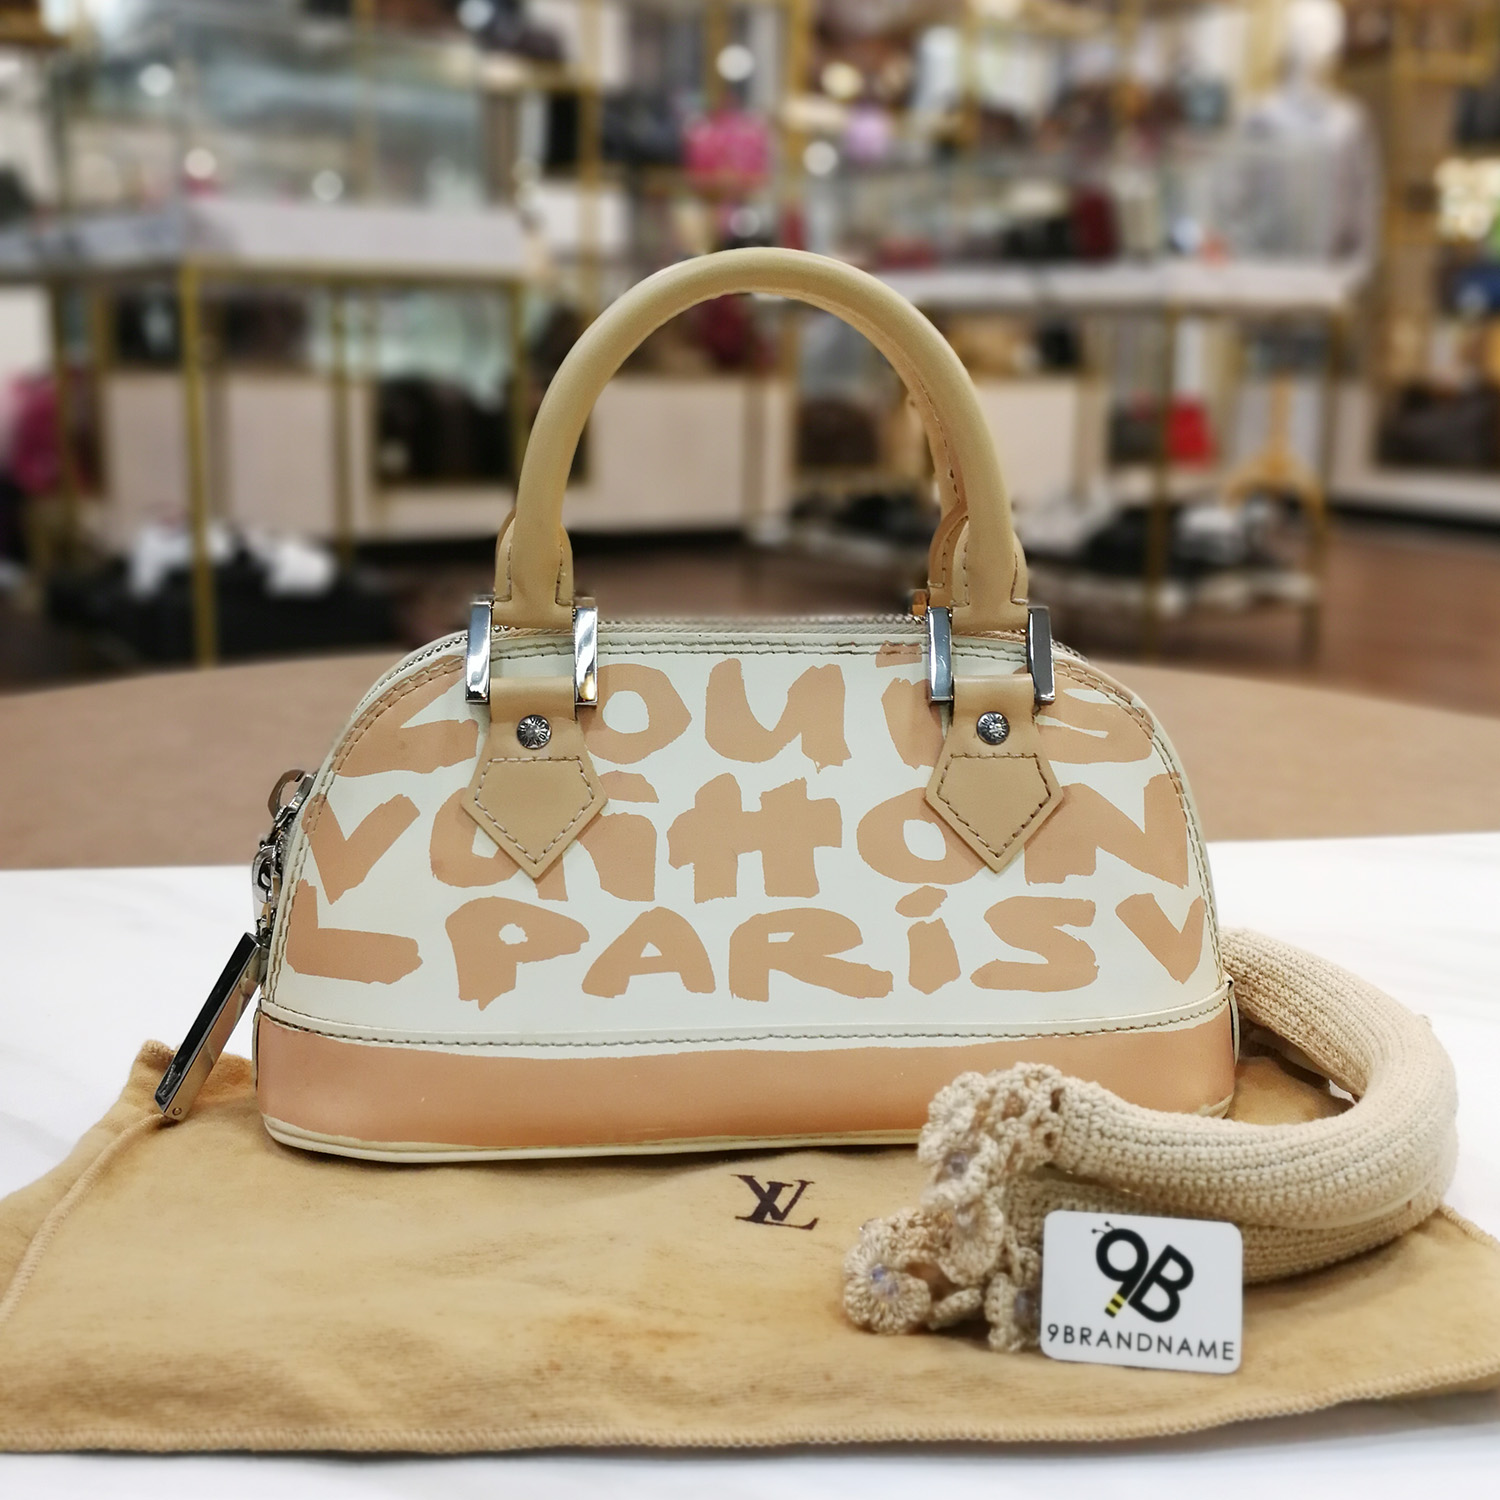 Used Louis Vuitton Bags >> Used Louis Vuitton Alma Pm Graffiti Beige White Limited Hand Bag M92178 Shw